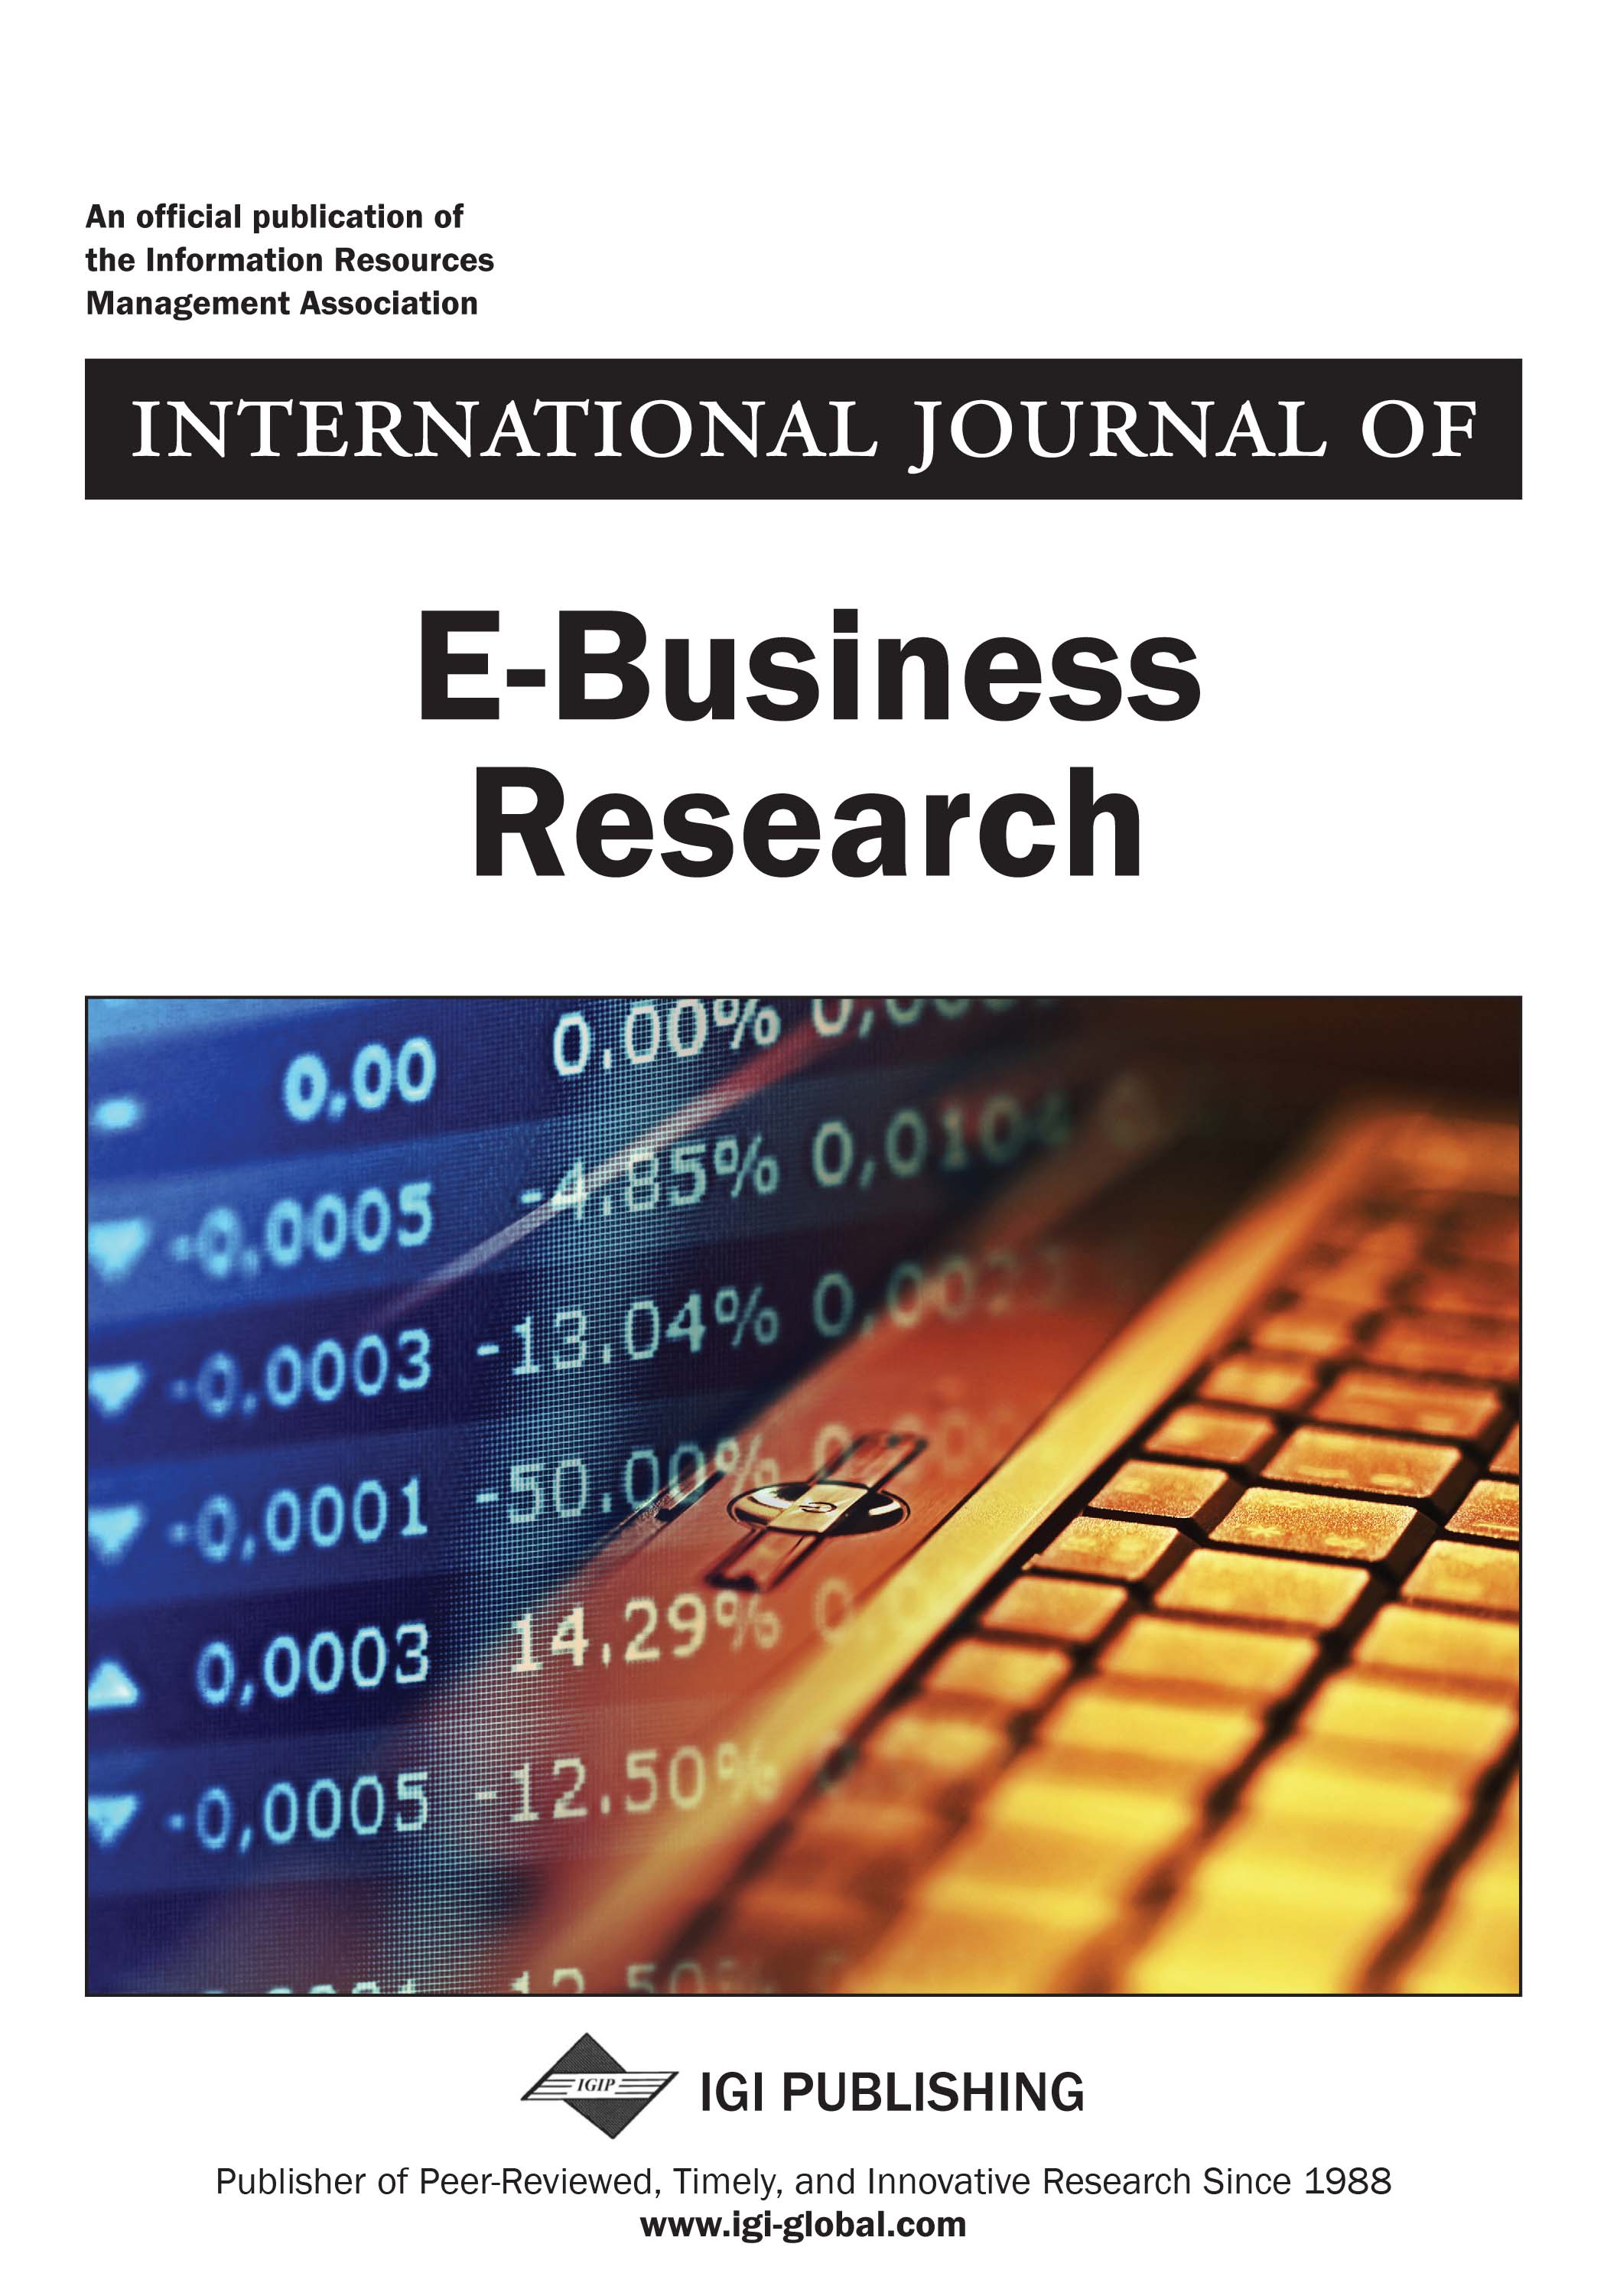 International Journal of E-Business Research (IJEBR) 2018 Inaugural Journal